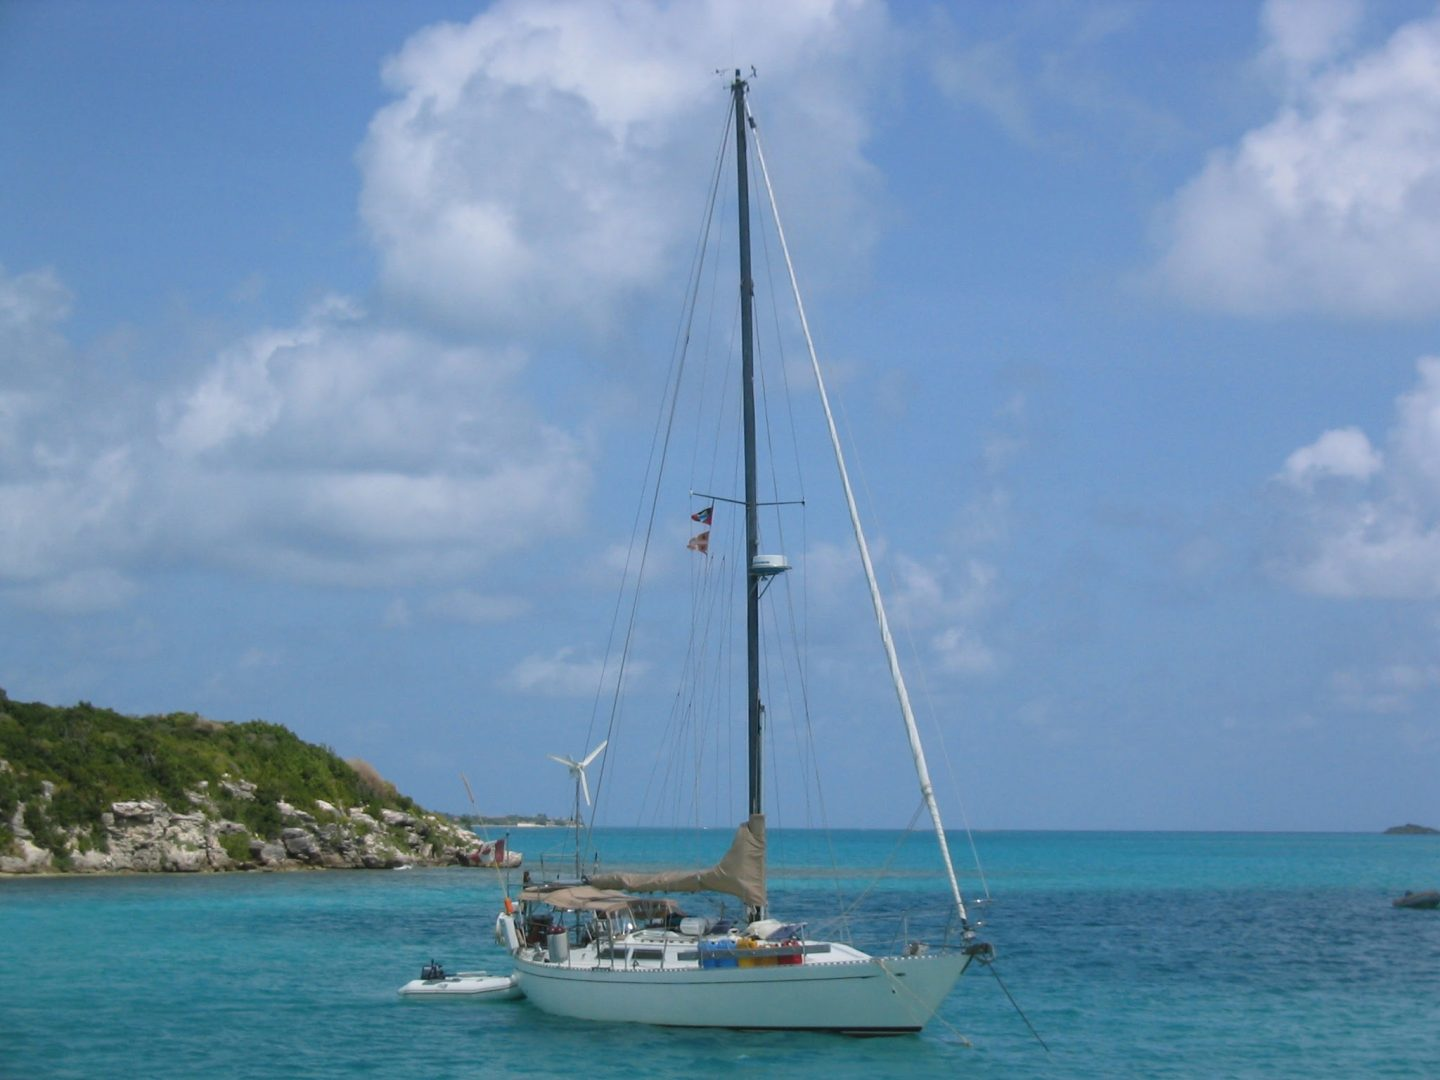 A boat near an island off Antigua, Caribbean